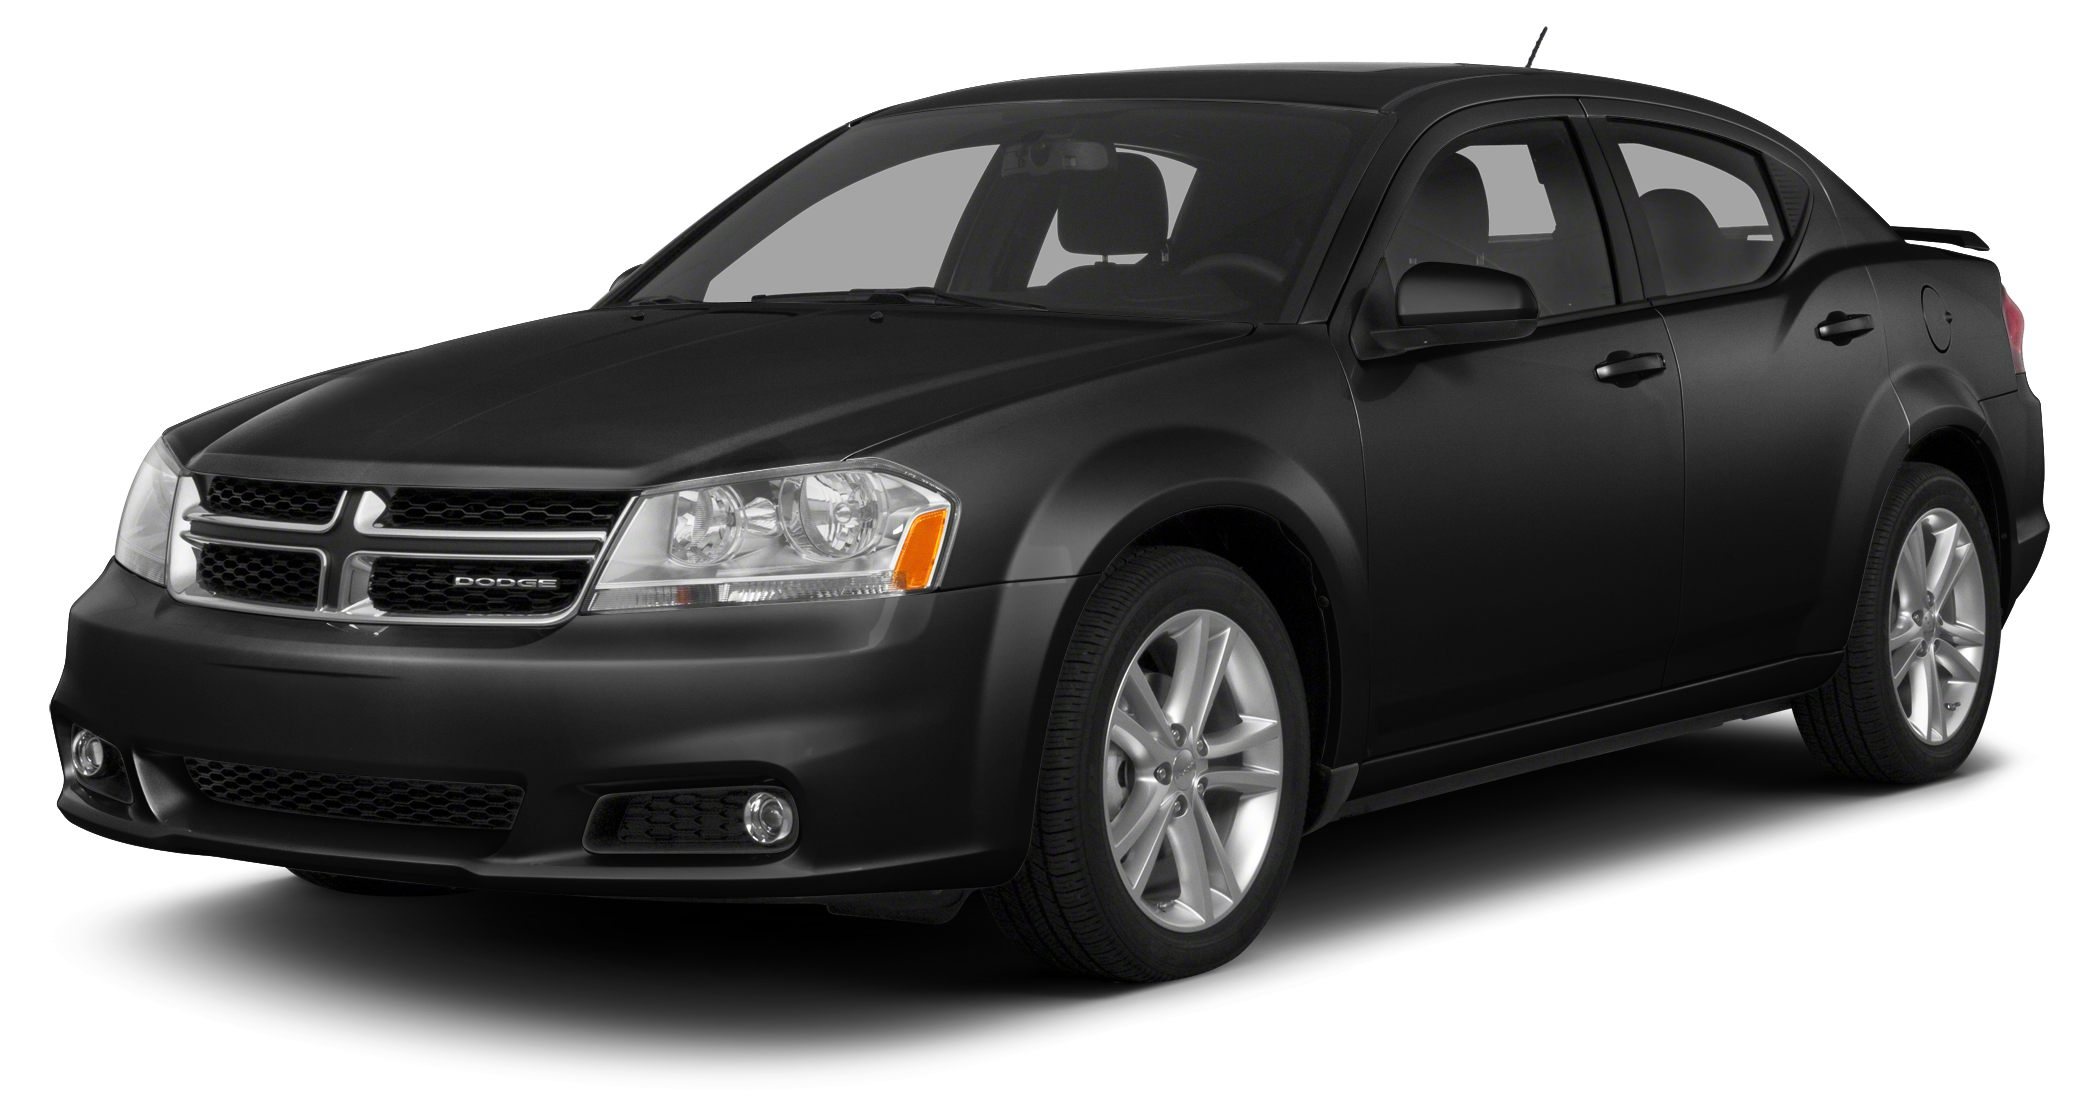 2013 Dodge Avenger SXT DISCLAIMER We are excited to offer this vehicle to you but it is currently